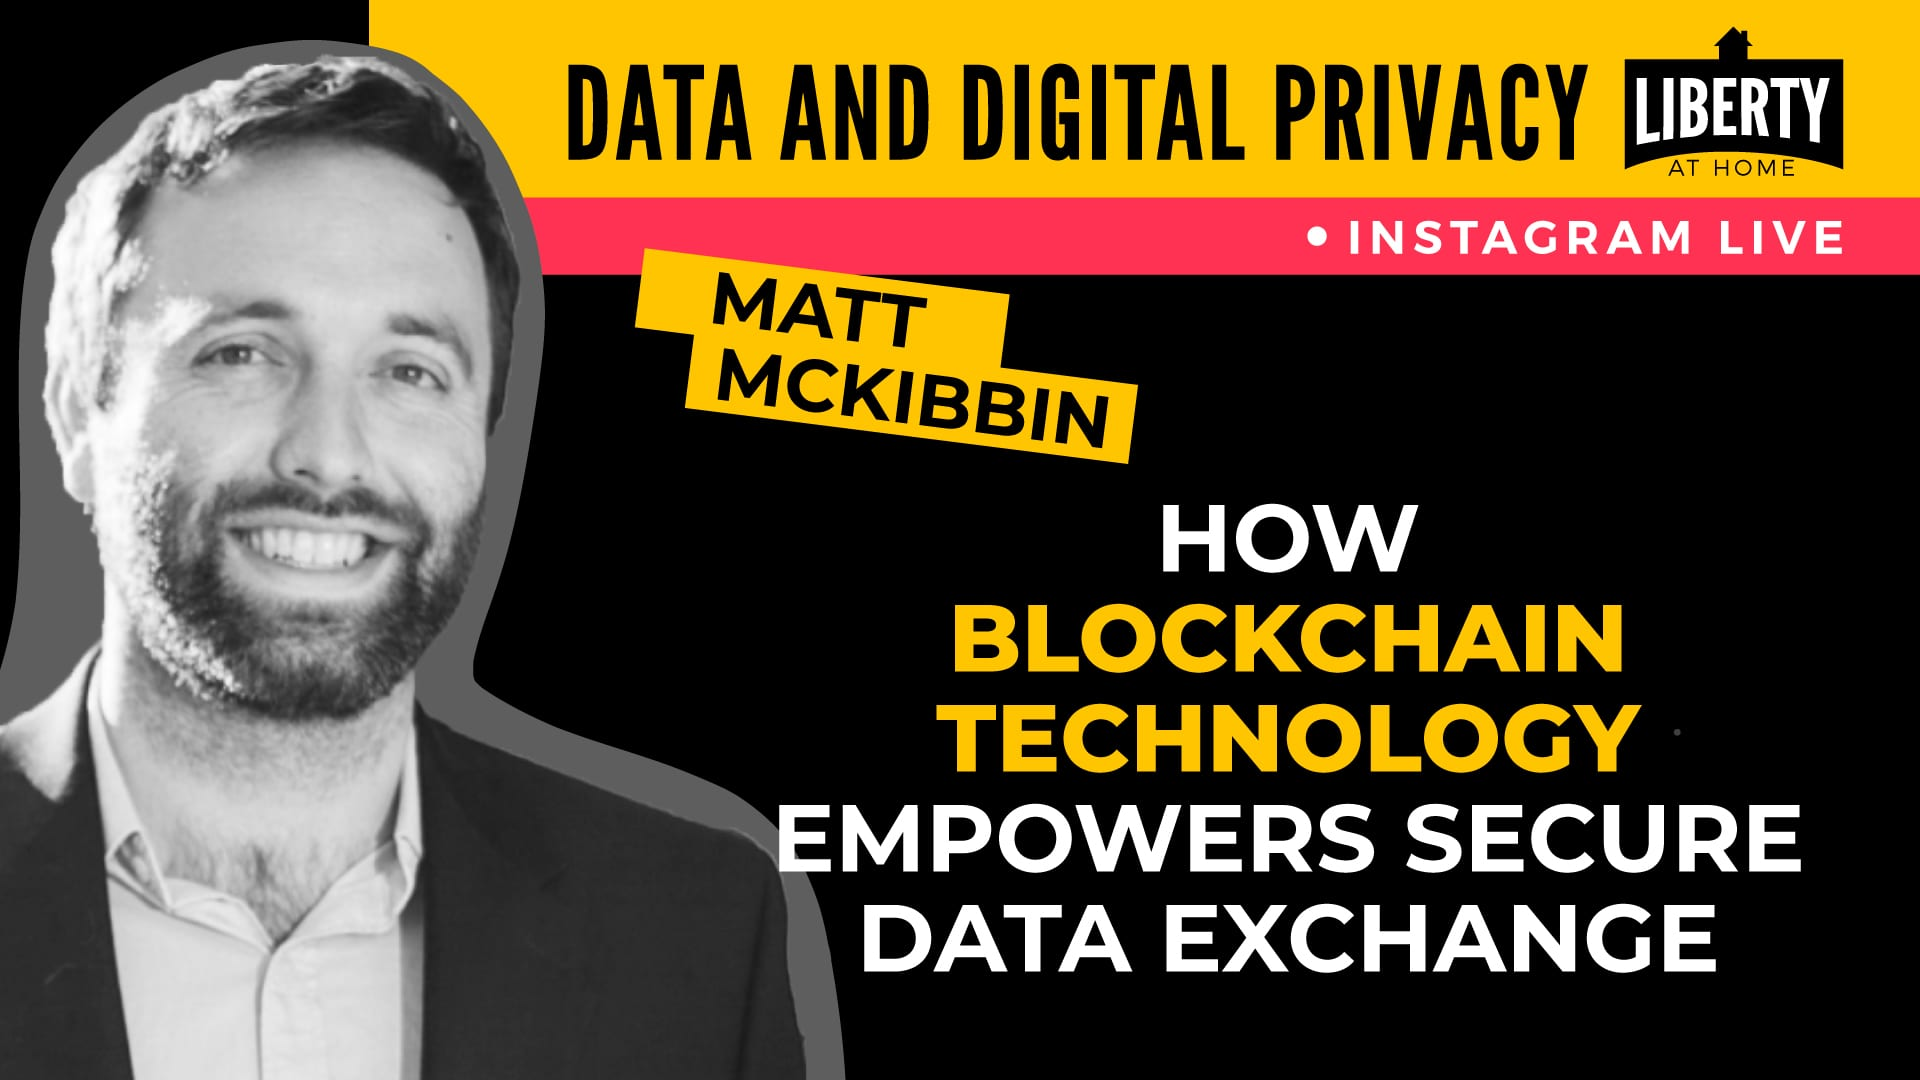 Matt McKibbin is a leading expert on blockchain and a prominent advocate for transformative technology